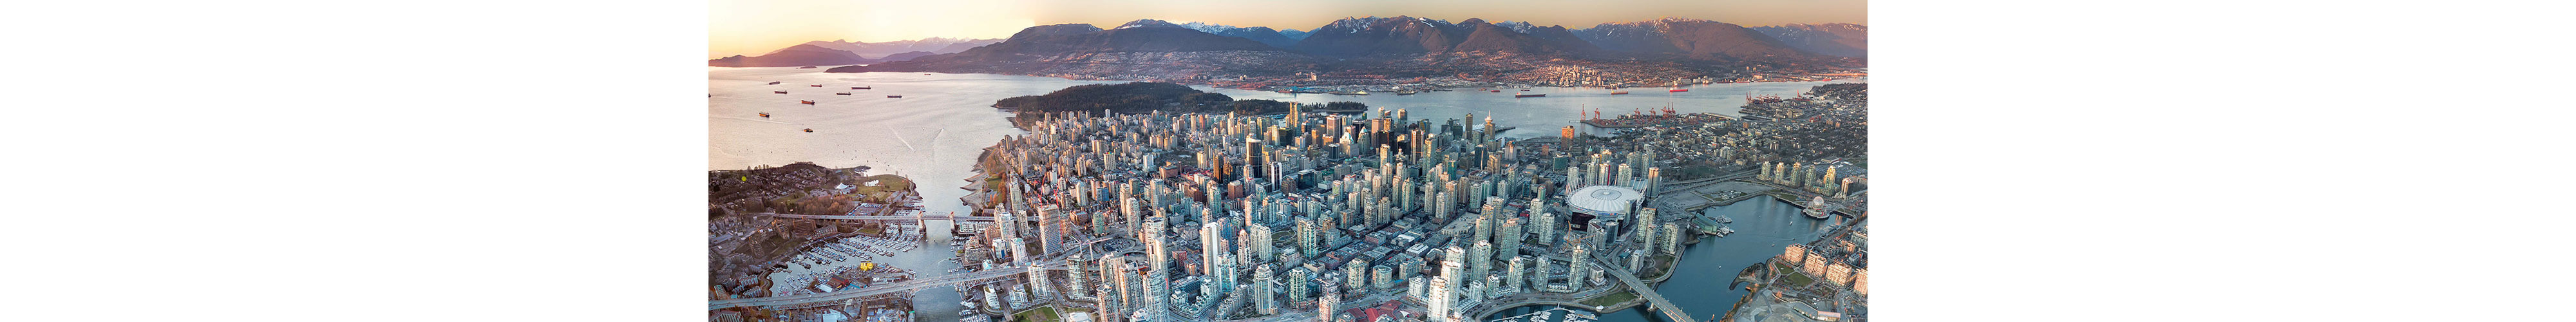 Services - VANCOUVER-ROOFING-SKYLINE.jpg